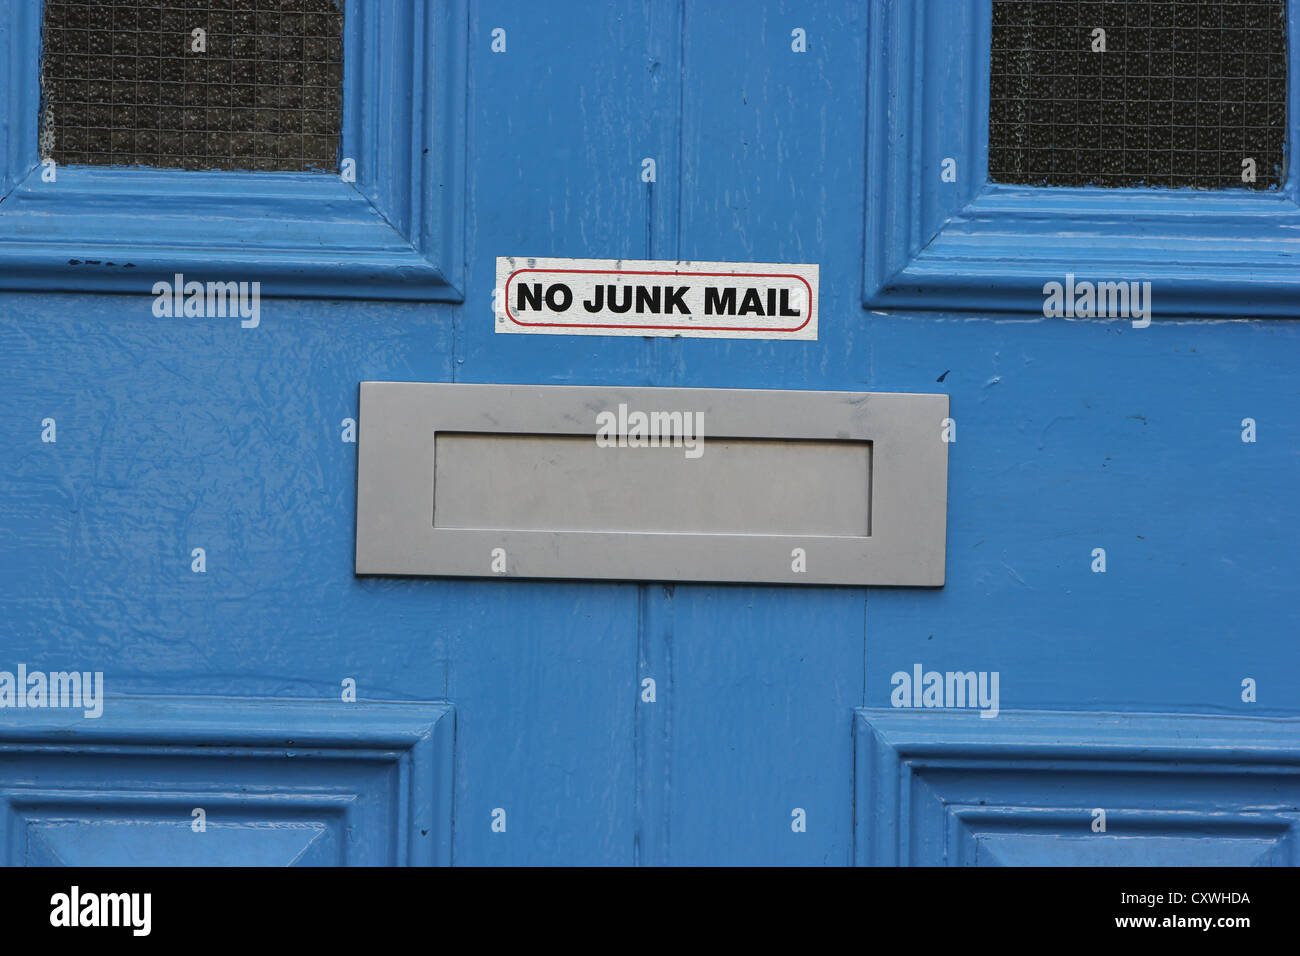 letterbox door letterbox no junk mail brightly colored door detail photoarkive  sc 1 st  Alamy & Door Letterbox Stock Photos u0026 Door Letterbox Stock Images - Alamy